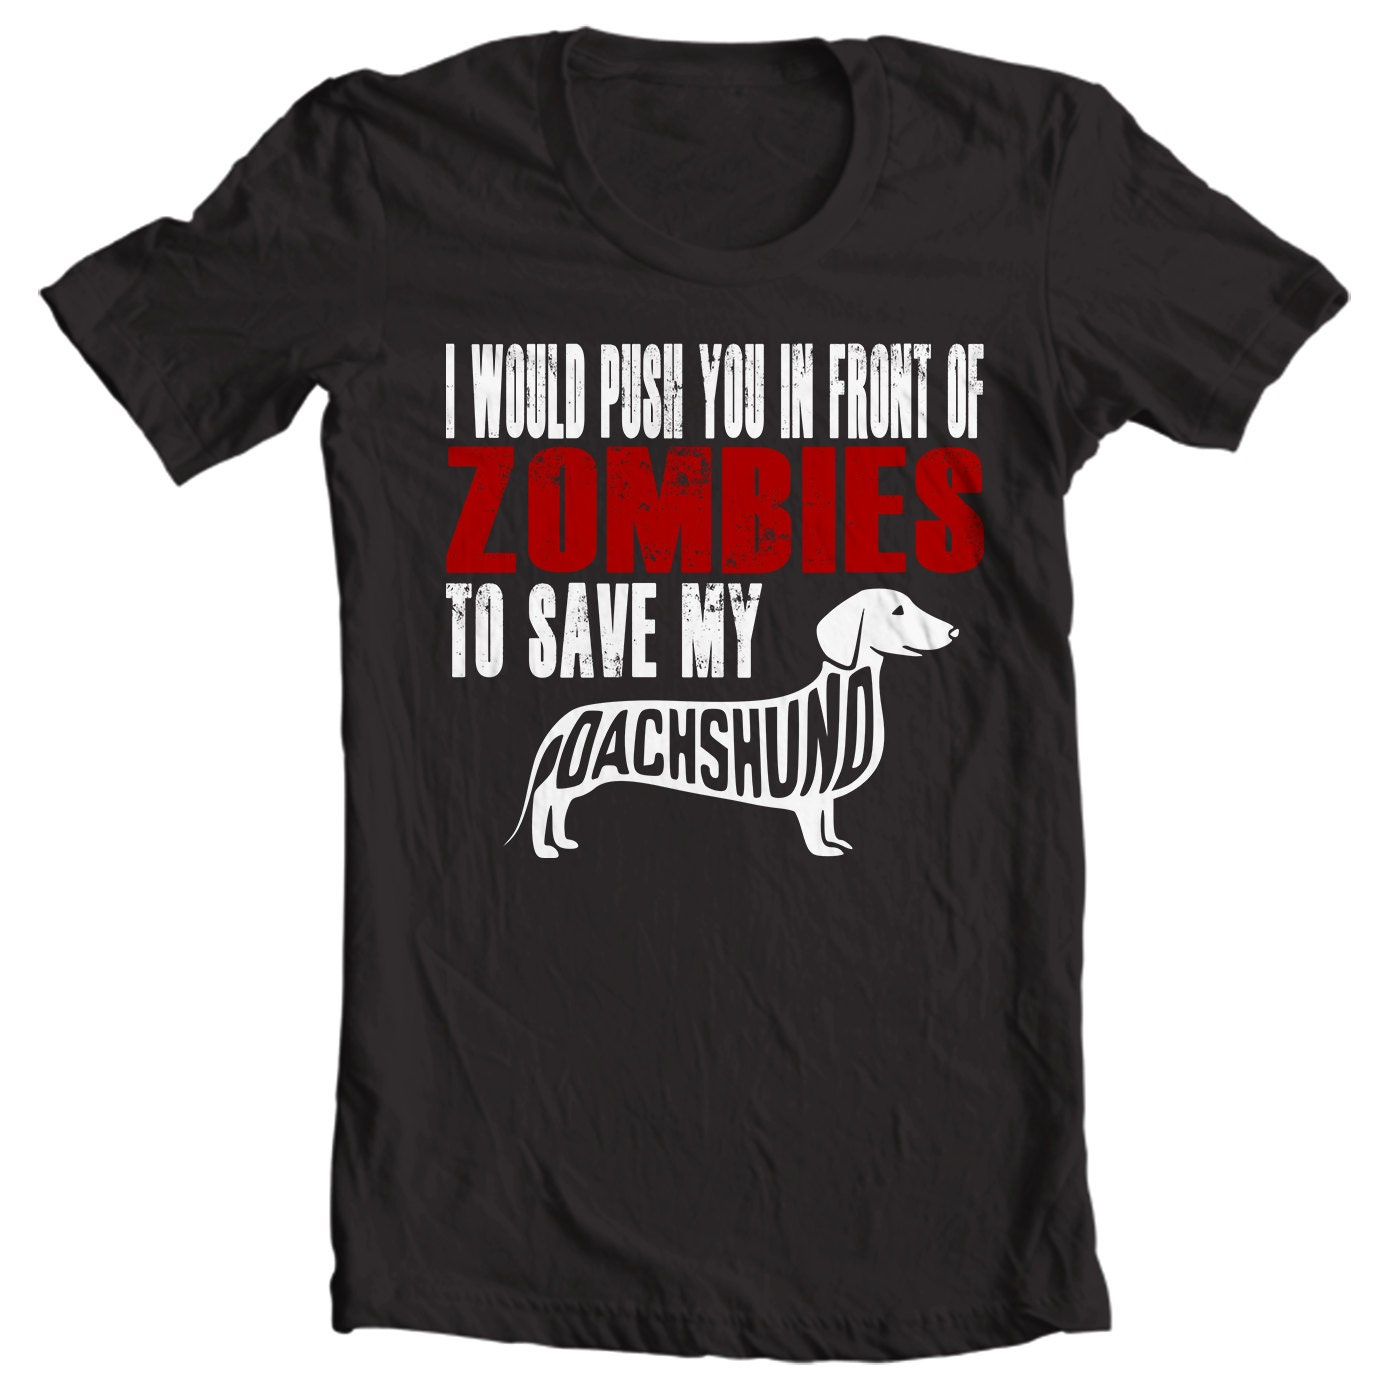 Dachshund T-shirt - I Would Push You In Front Of Zombies To Save My Dachshund - My Dog Dachshund T-shirt